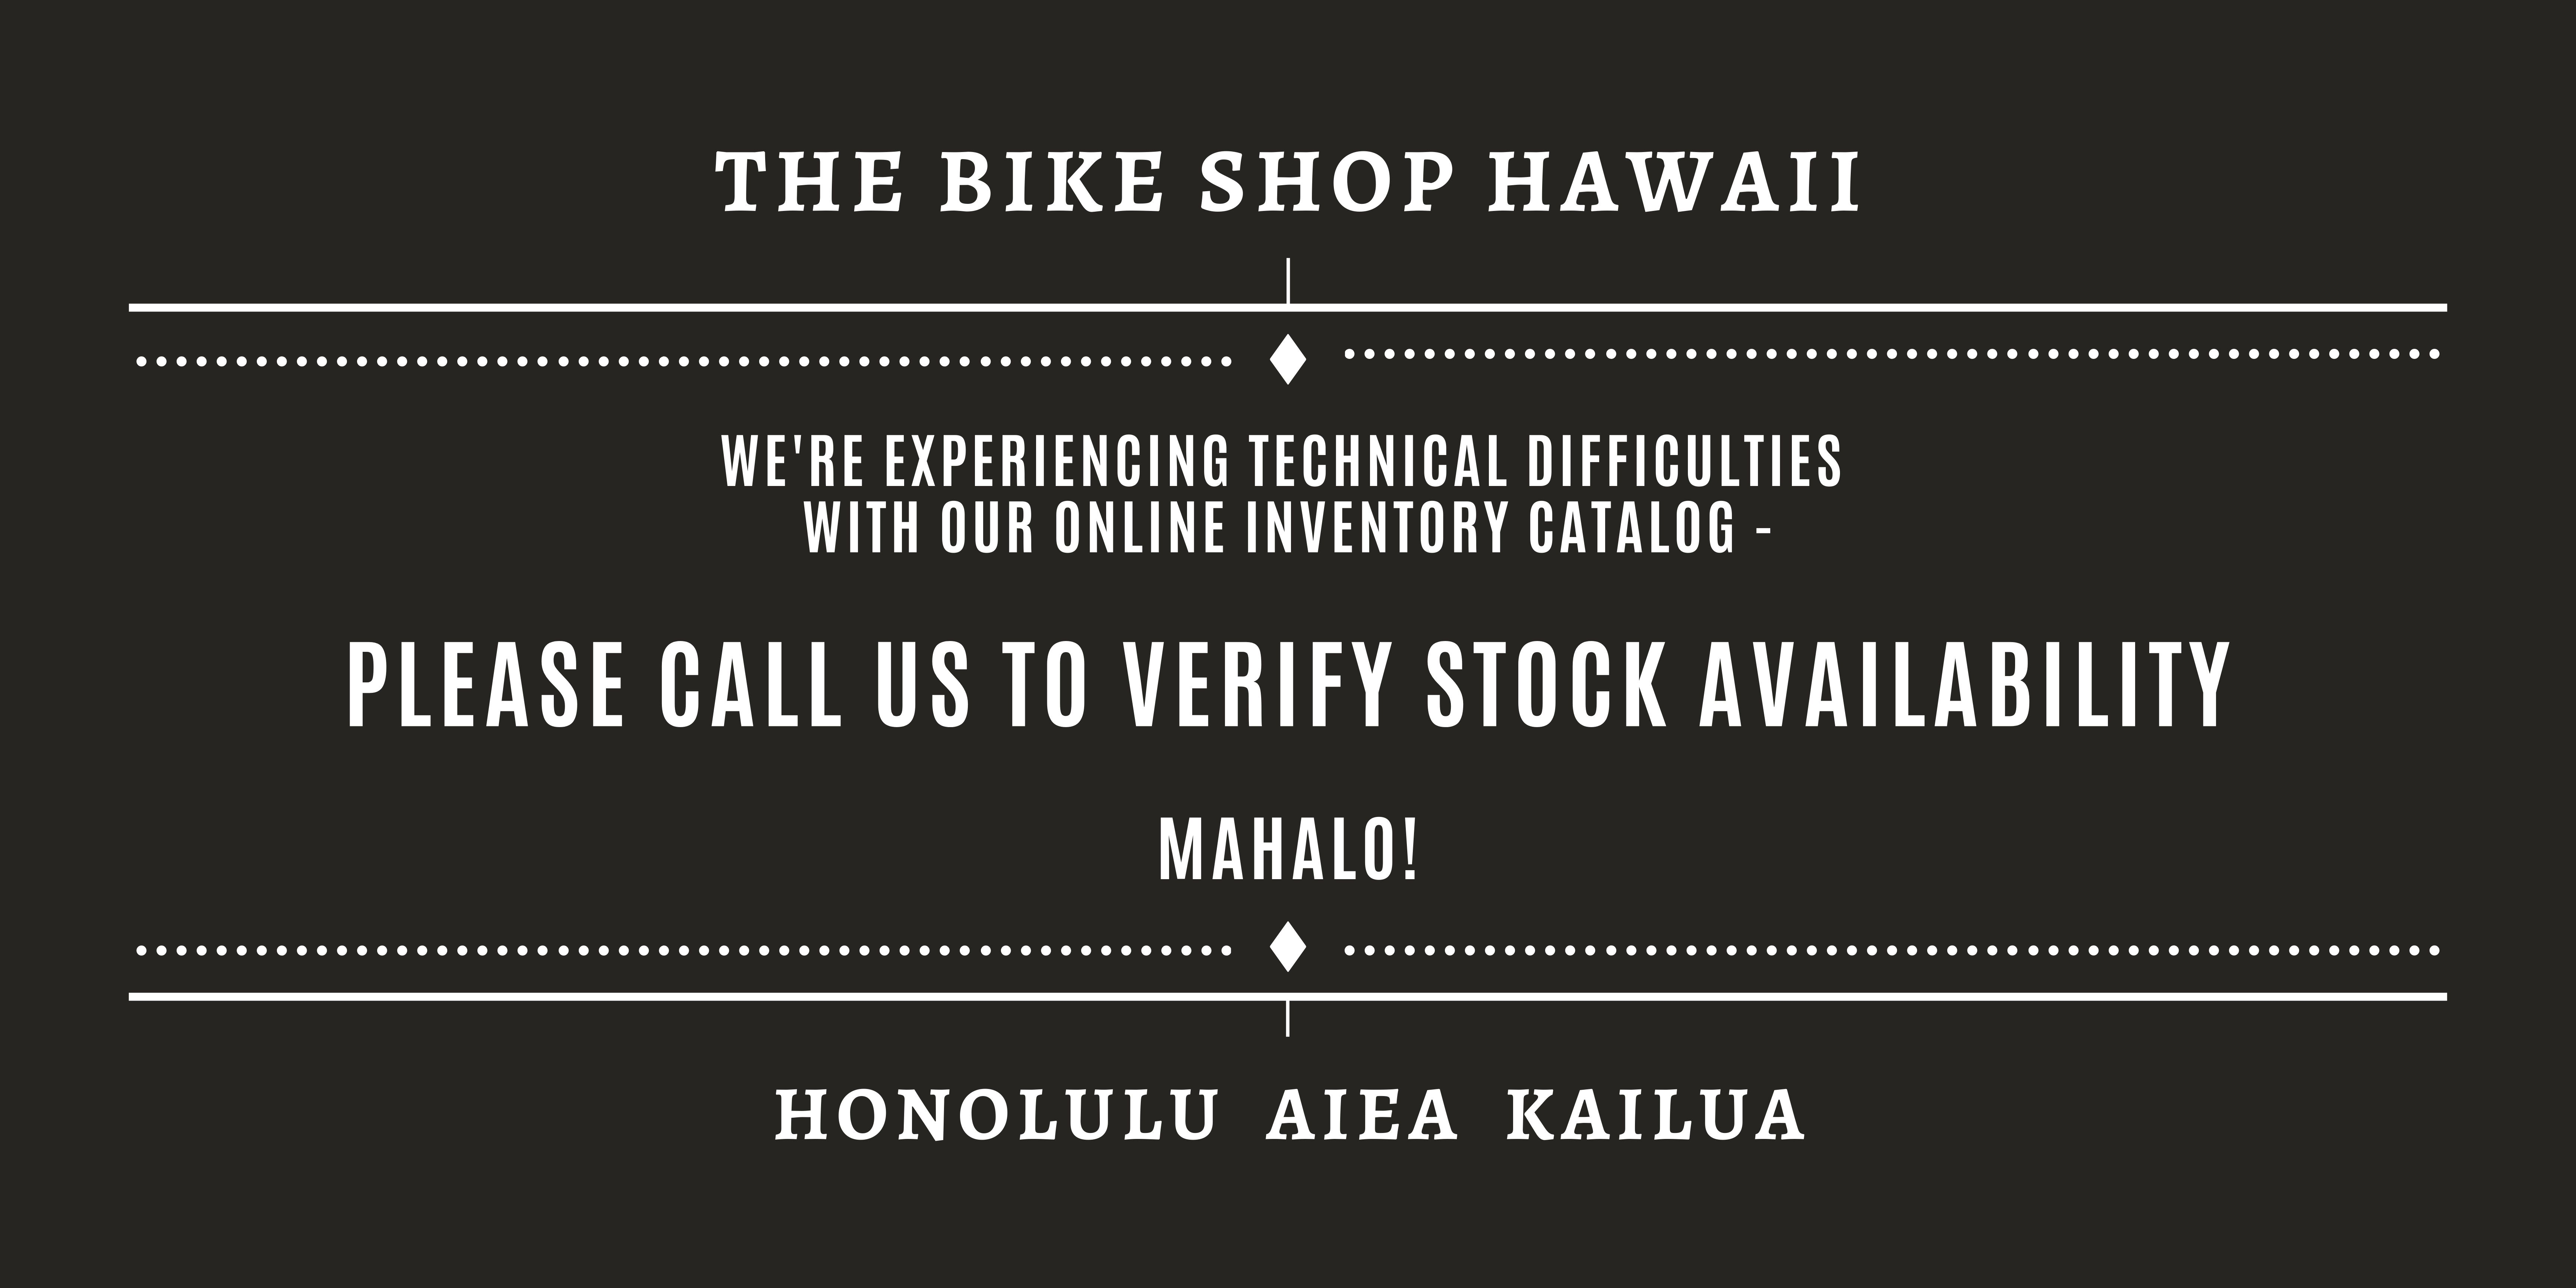 The Bike Shop Hawaii | call to confirm inventory stock